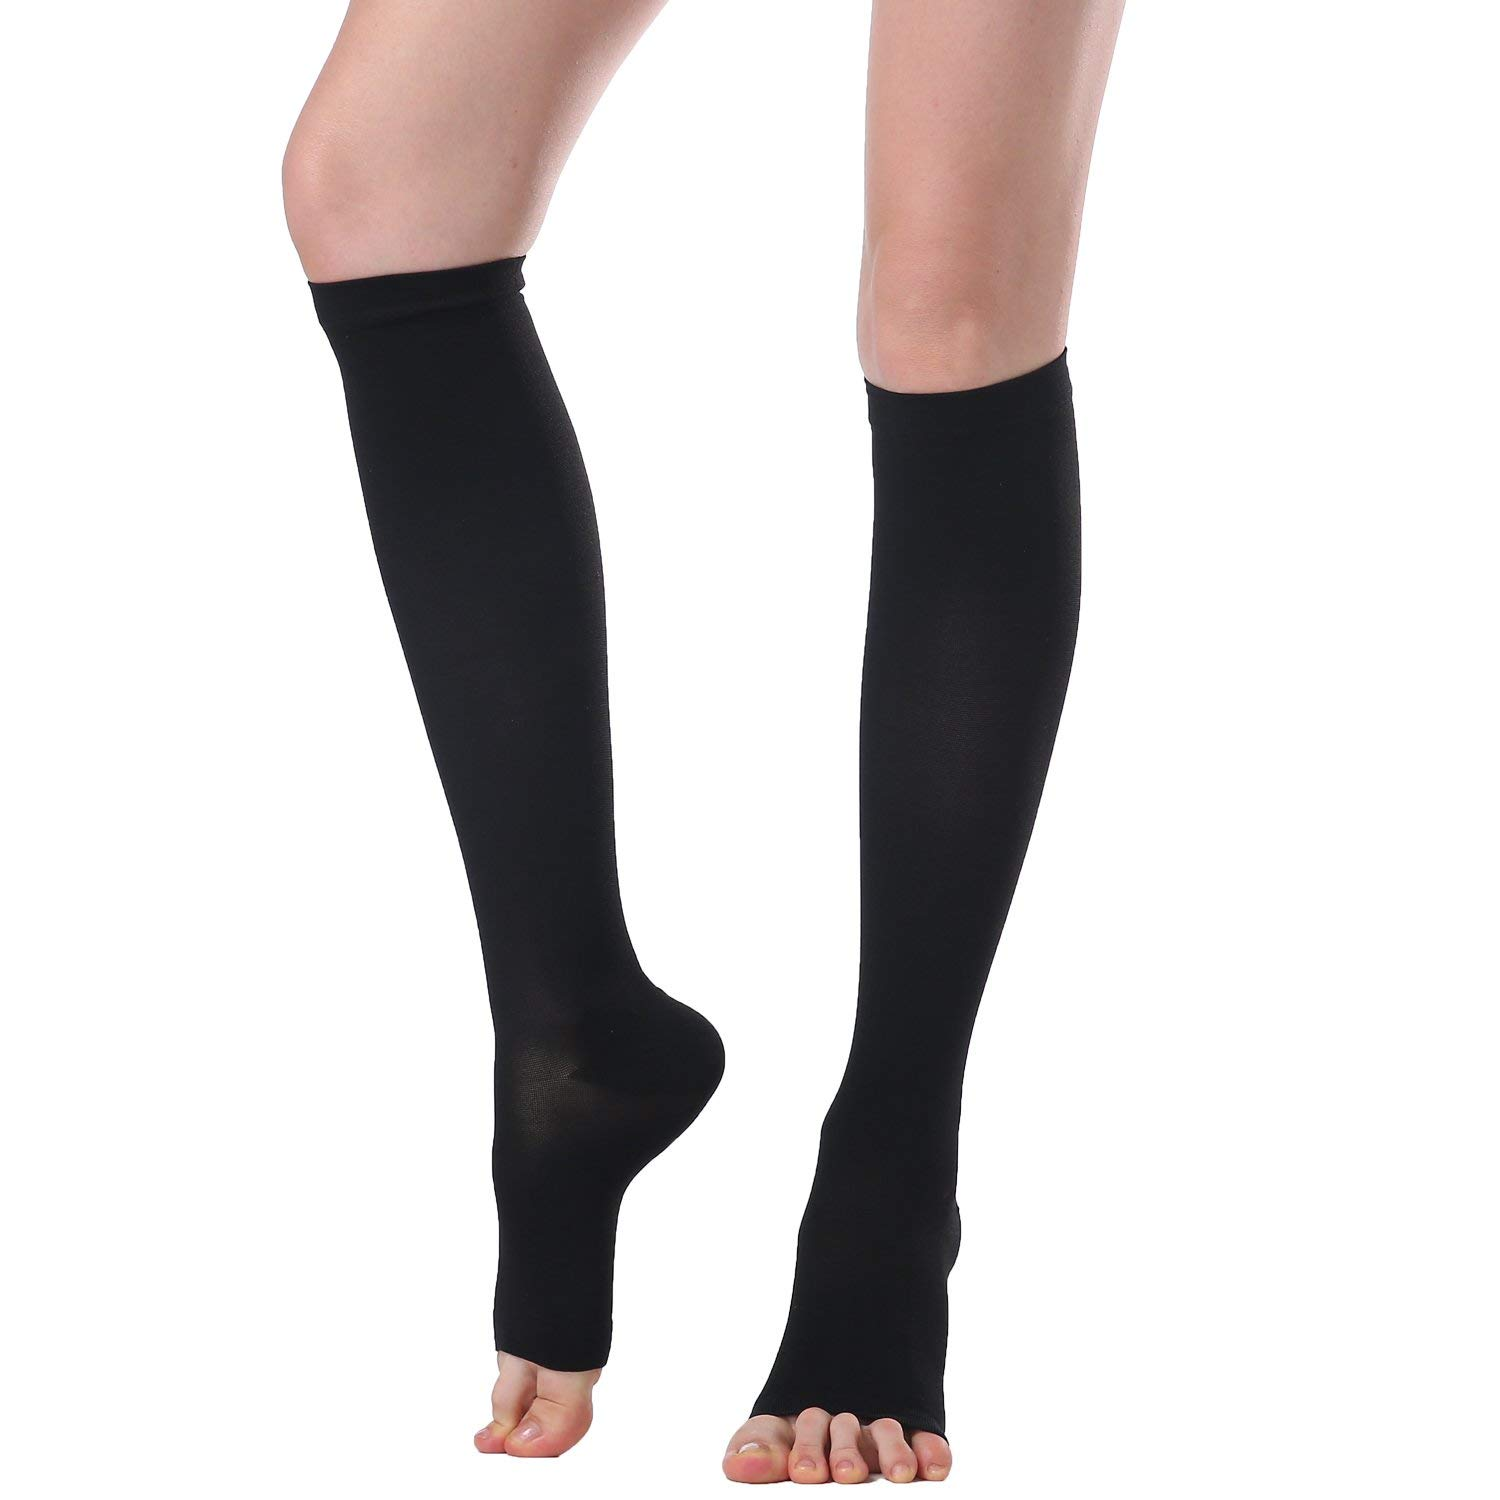 Compression Stockings & Stovepipe Socks Slimming Legging Knee High Sock For Women&Men-20-30mmHg-30-40mmHg Medical Support Hose Compression Socks,Treatment For Swelling,Varicose Veins (XL, Black(D))